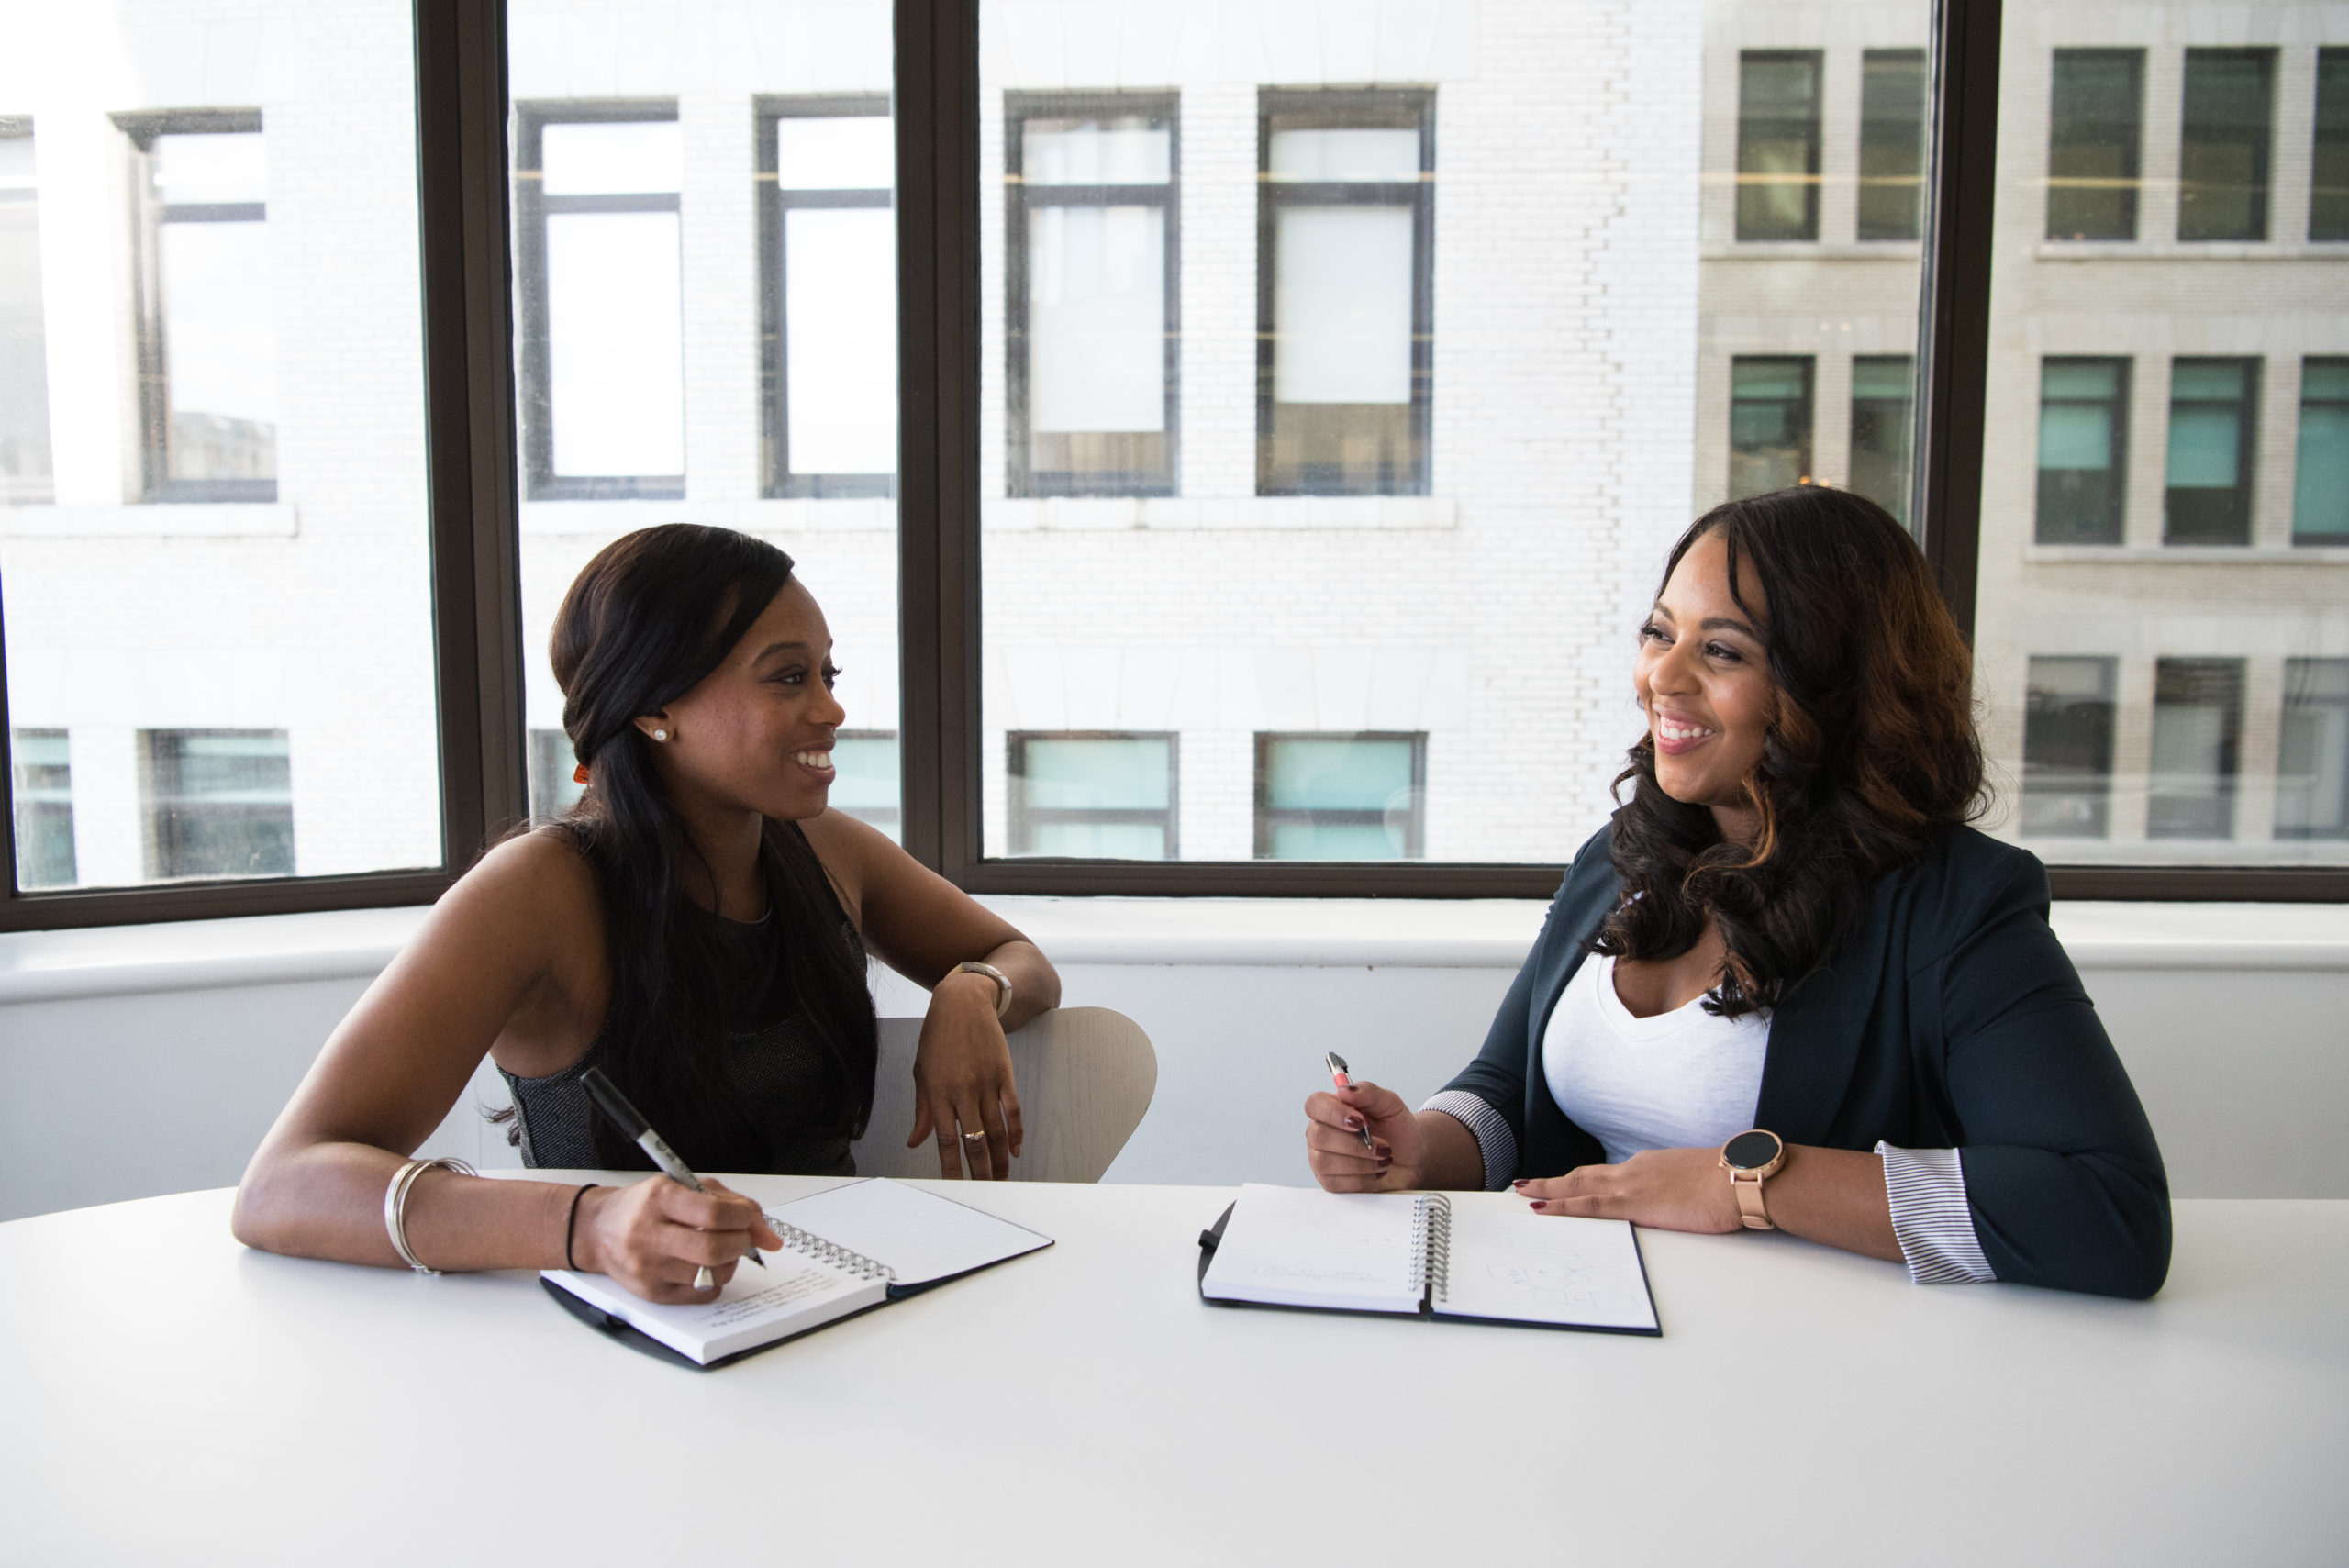 Interview Help: How to Be More Likable During an Interview